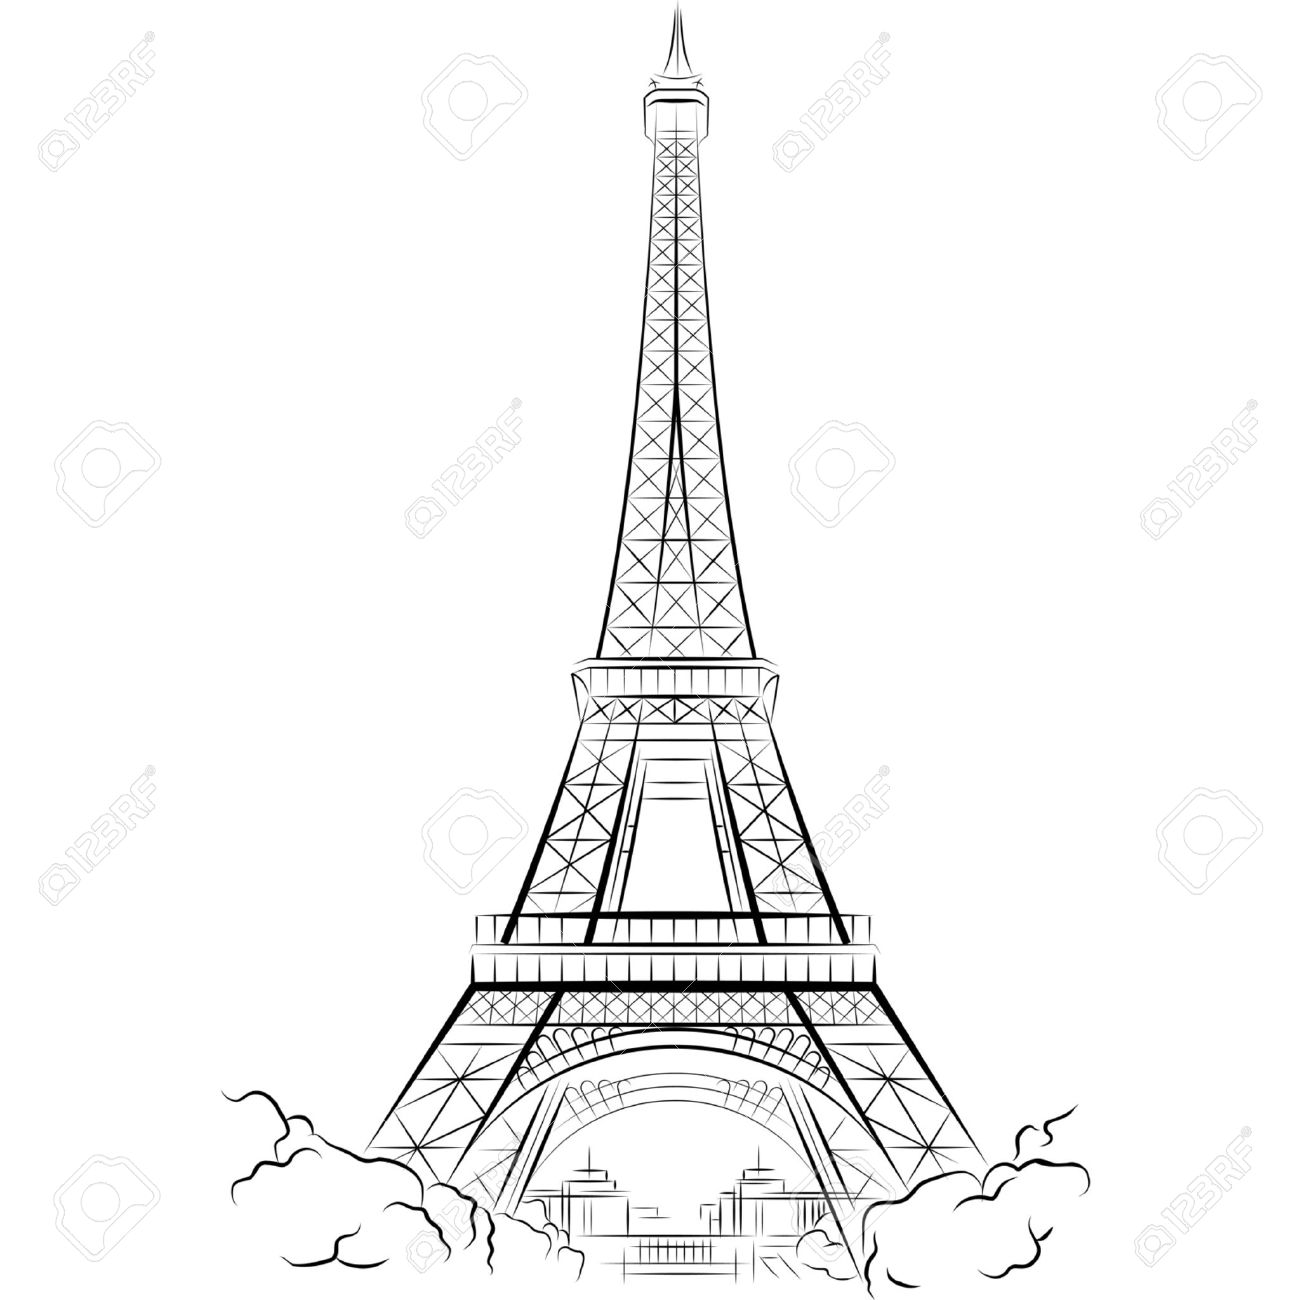 Drawing eiffel tower in paris france vector illustration stock vector 10118240